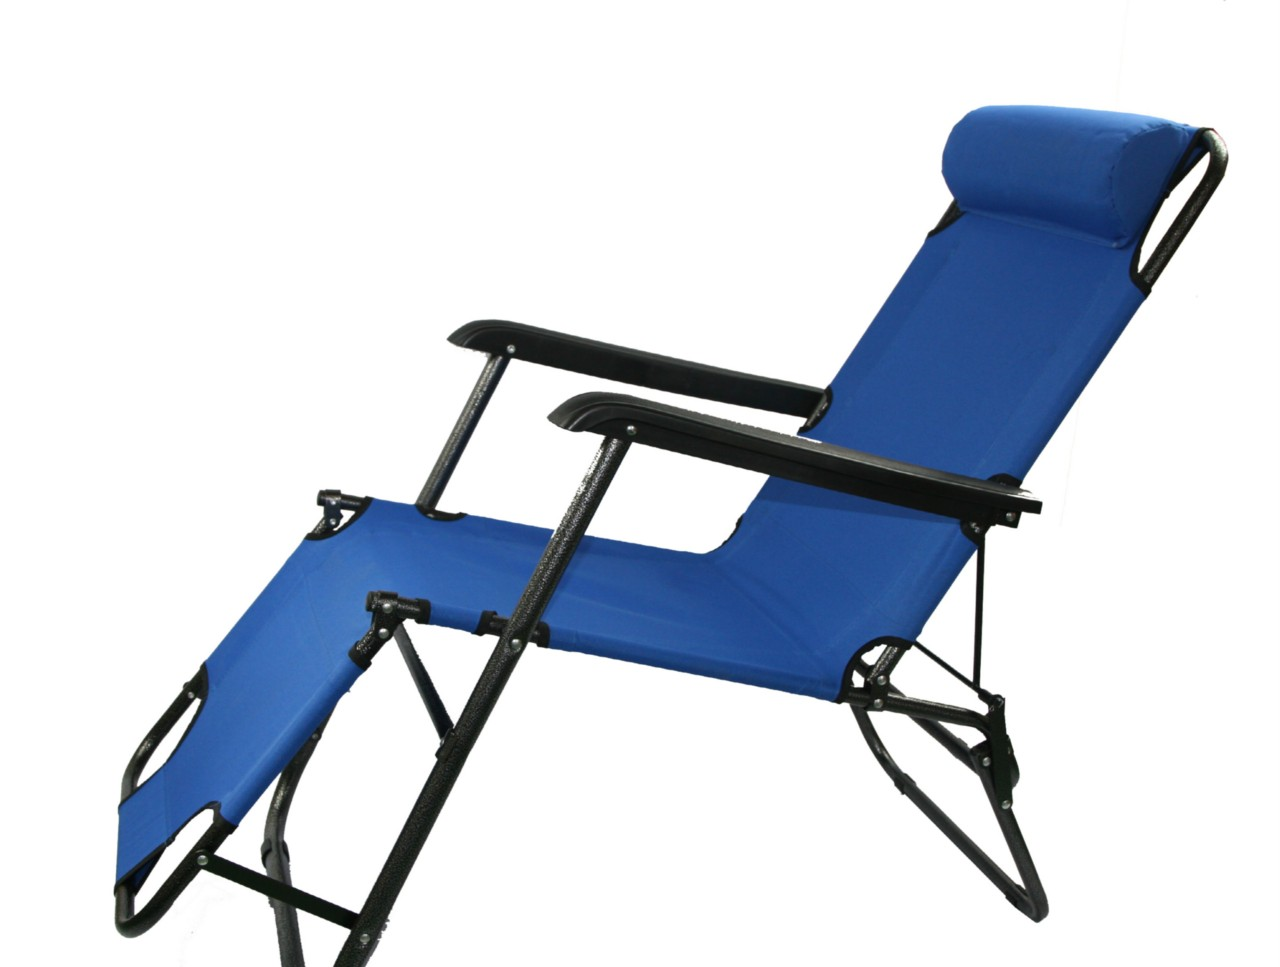 patio lounge chairs target unfinished oak new light portable folding recliner outdoor chair